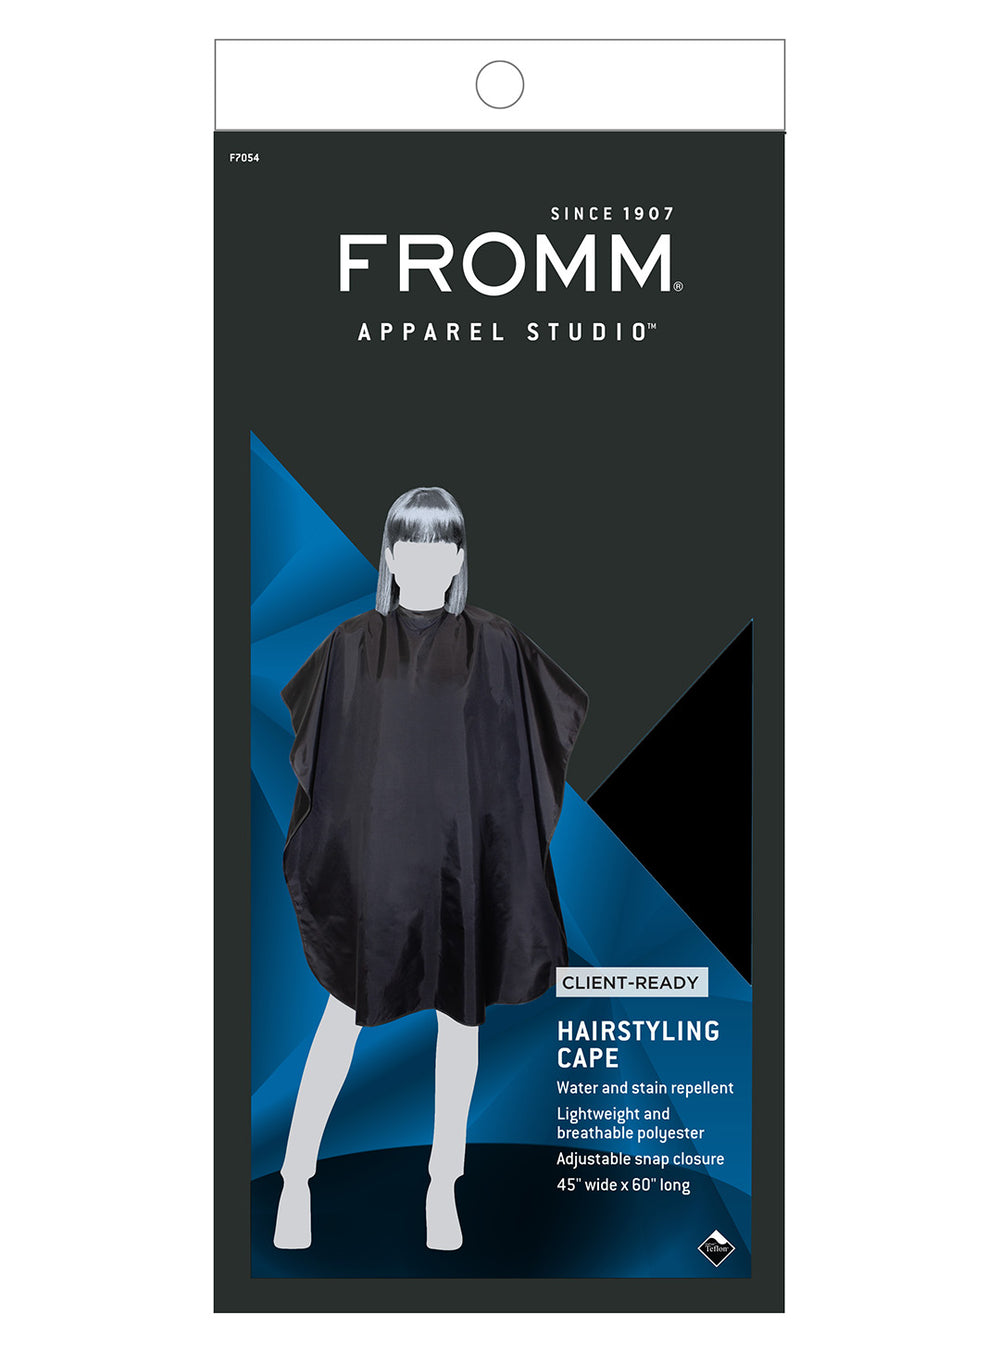 Fromm Pro Professional Salon Teflon® Coated Black Hairstyling Cape in packaging